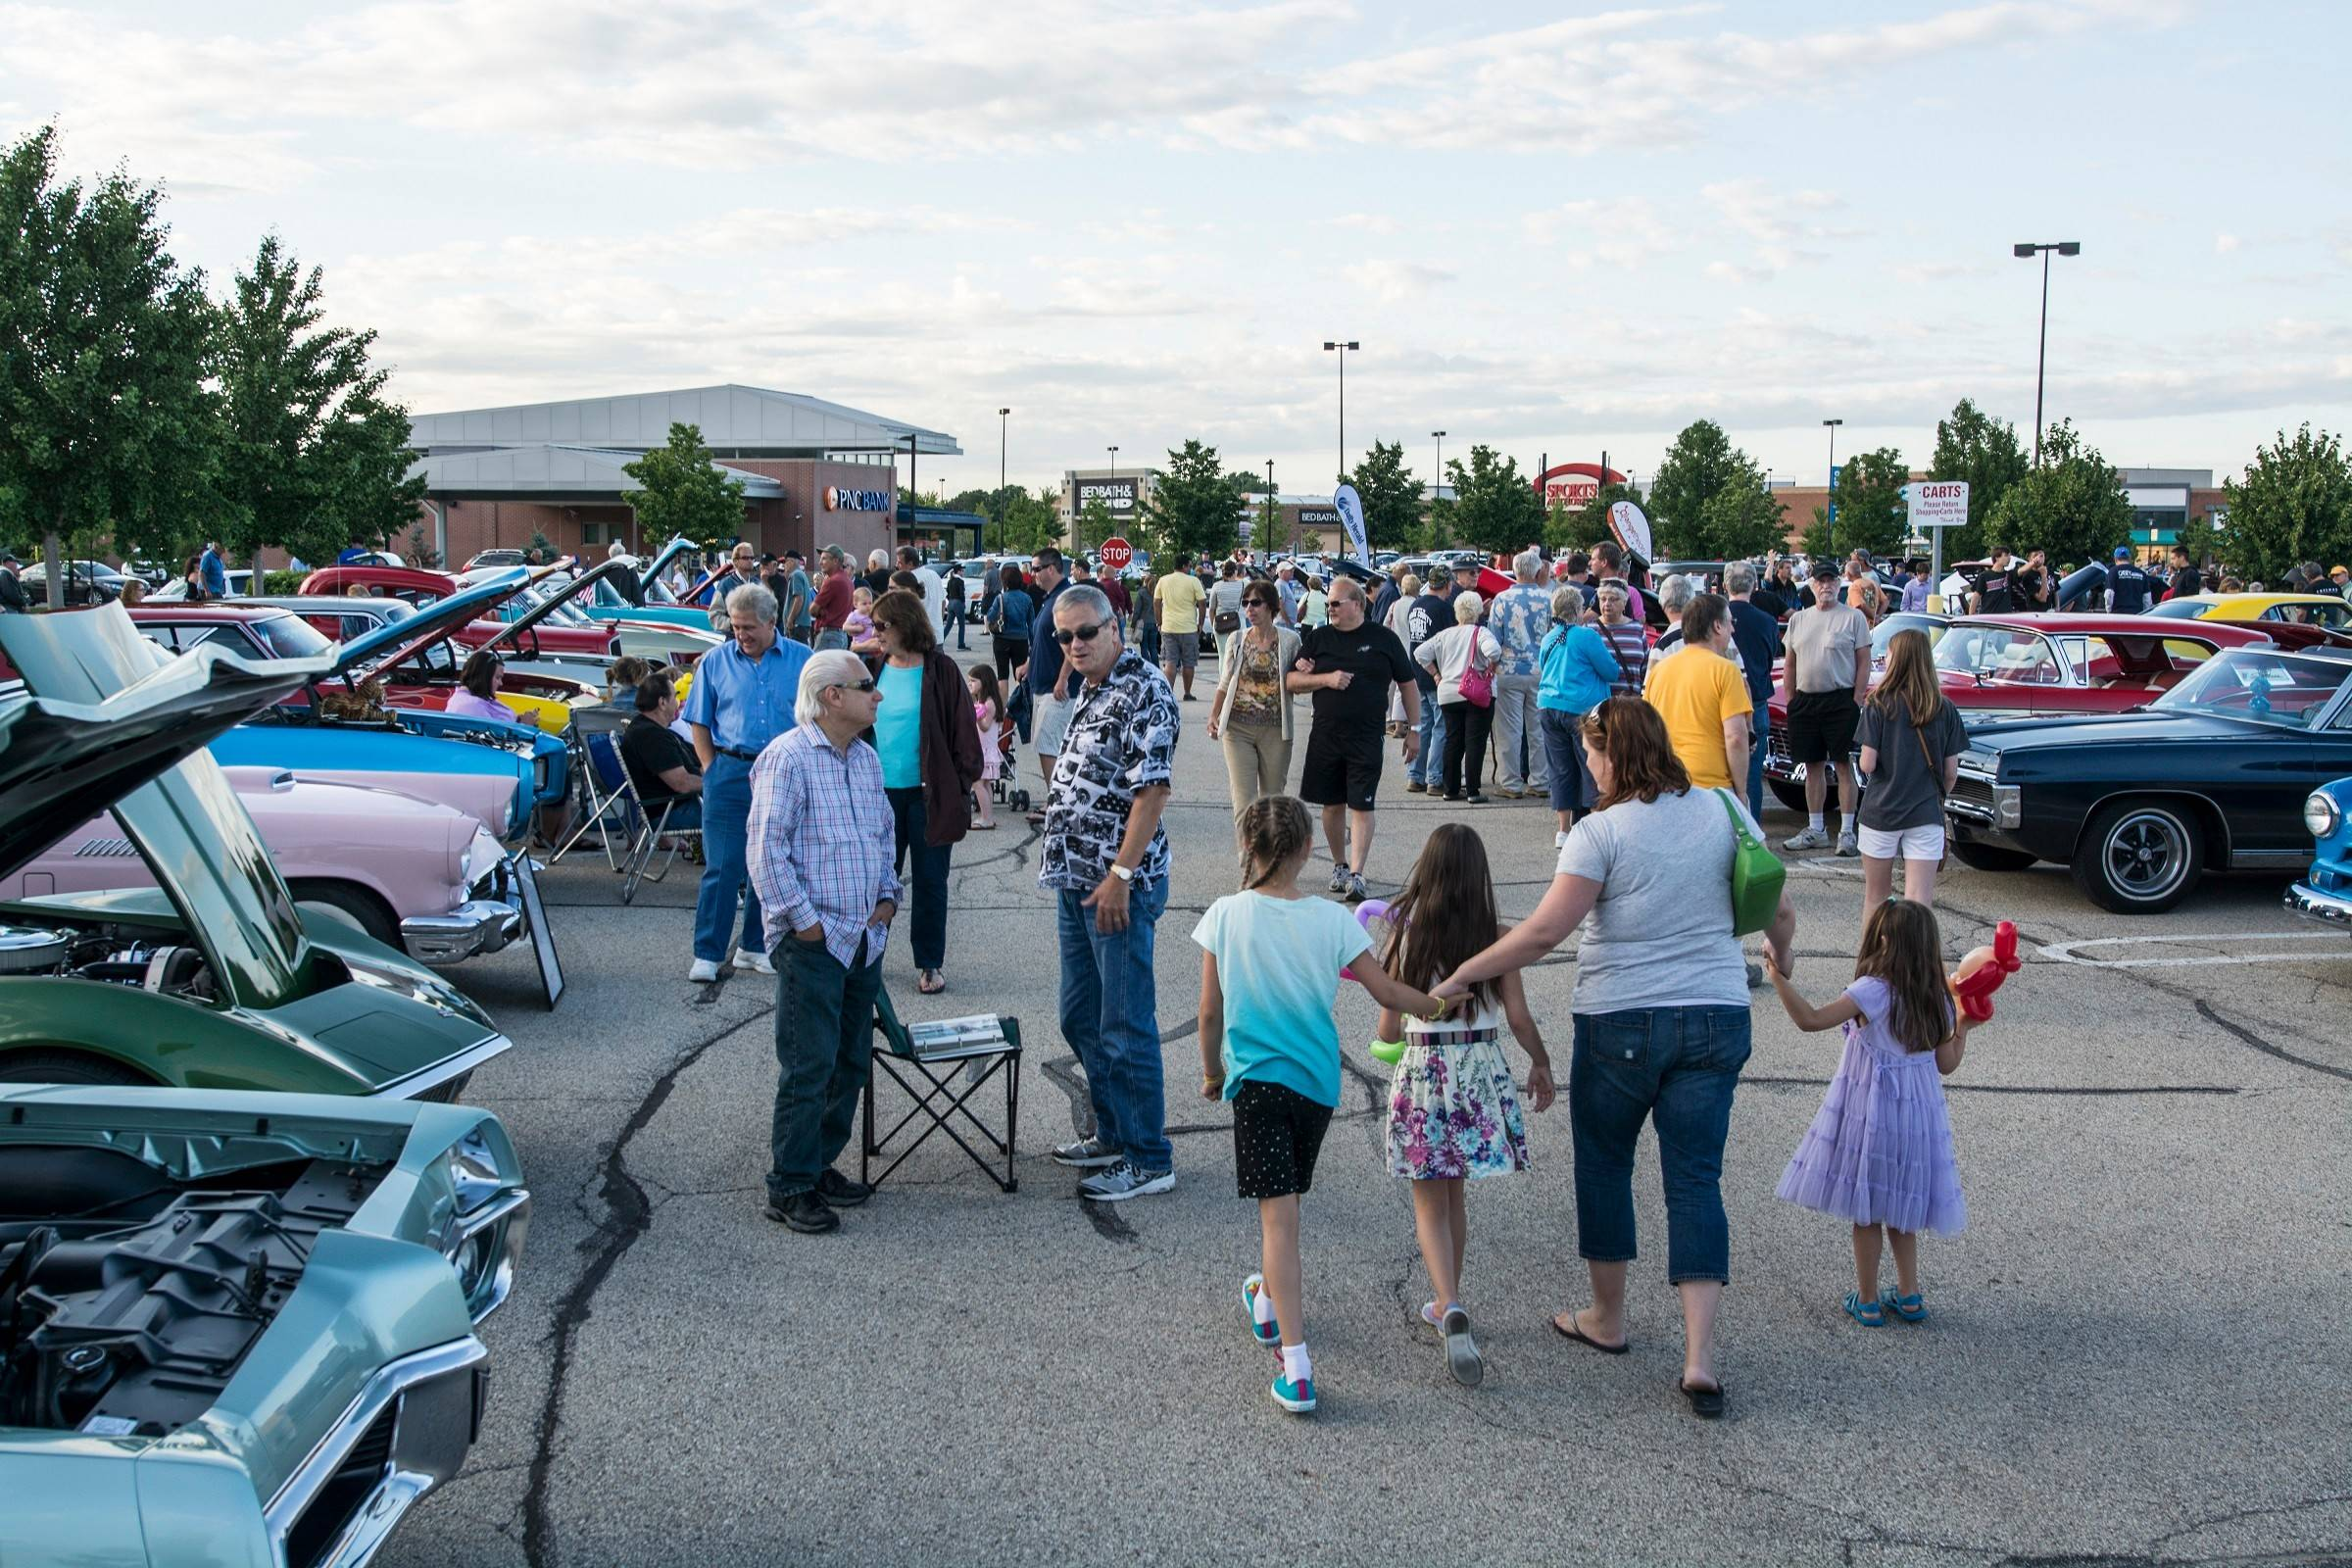 Hundreds of spectators came out to view the cars at the second of three Randhurst Village Cruise Nights being held this summer. The final show will be on Aug. 20.